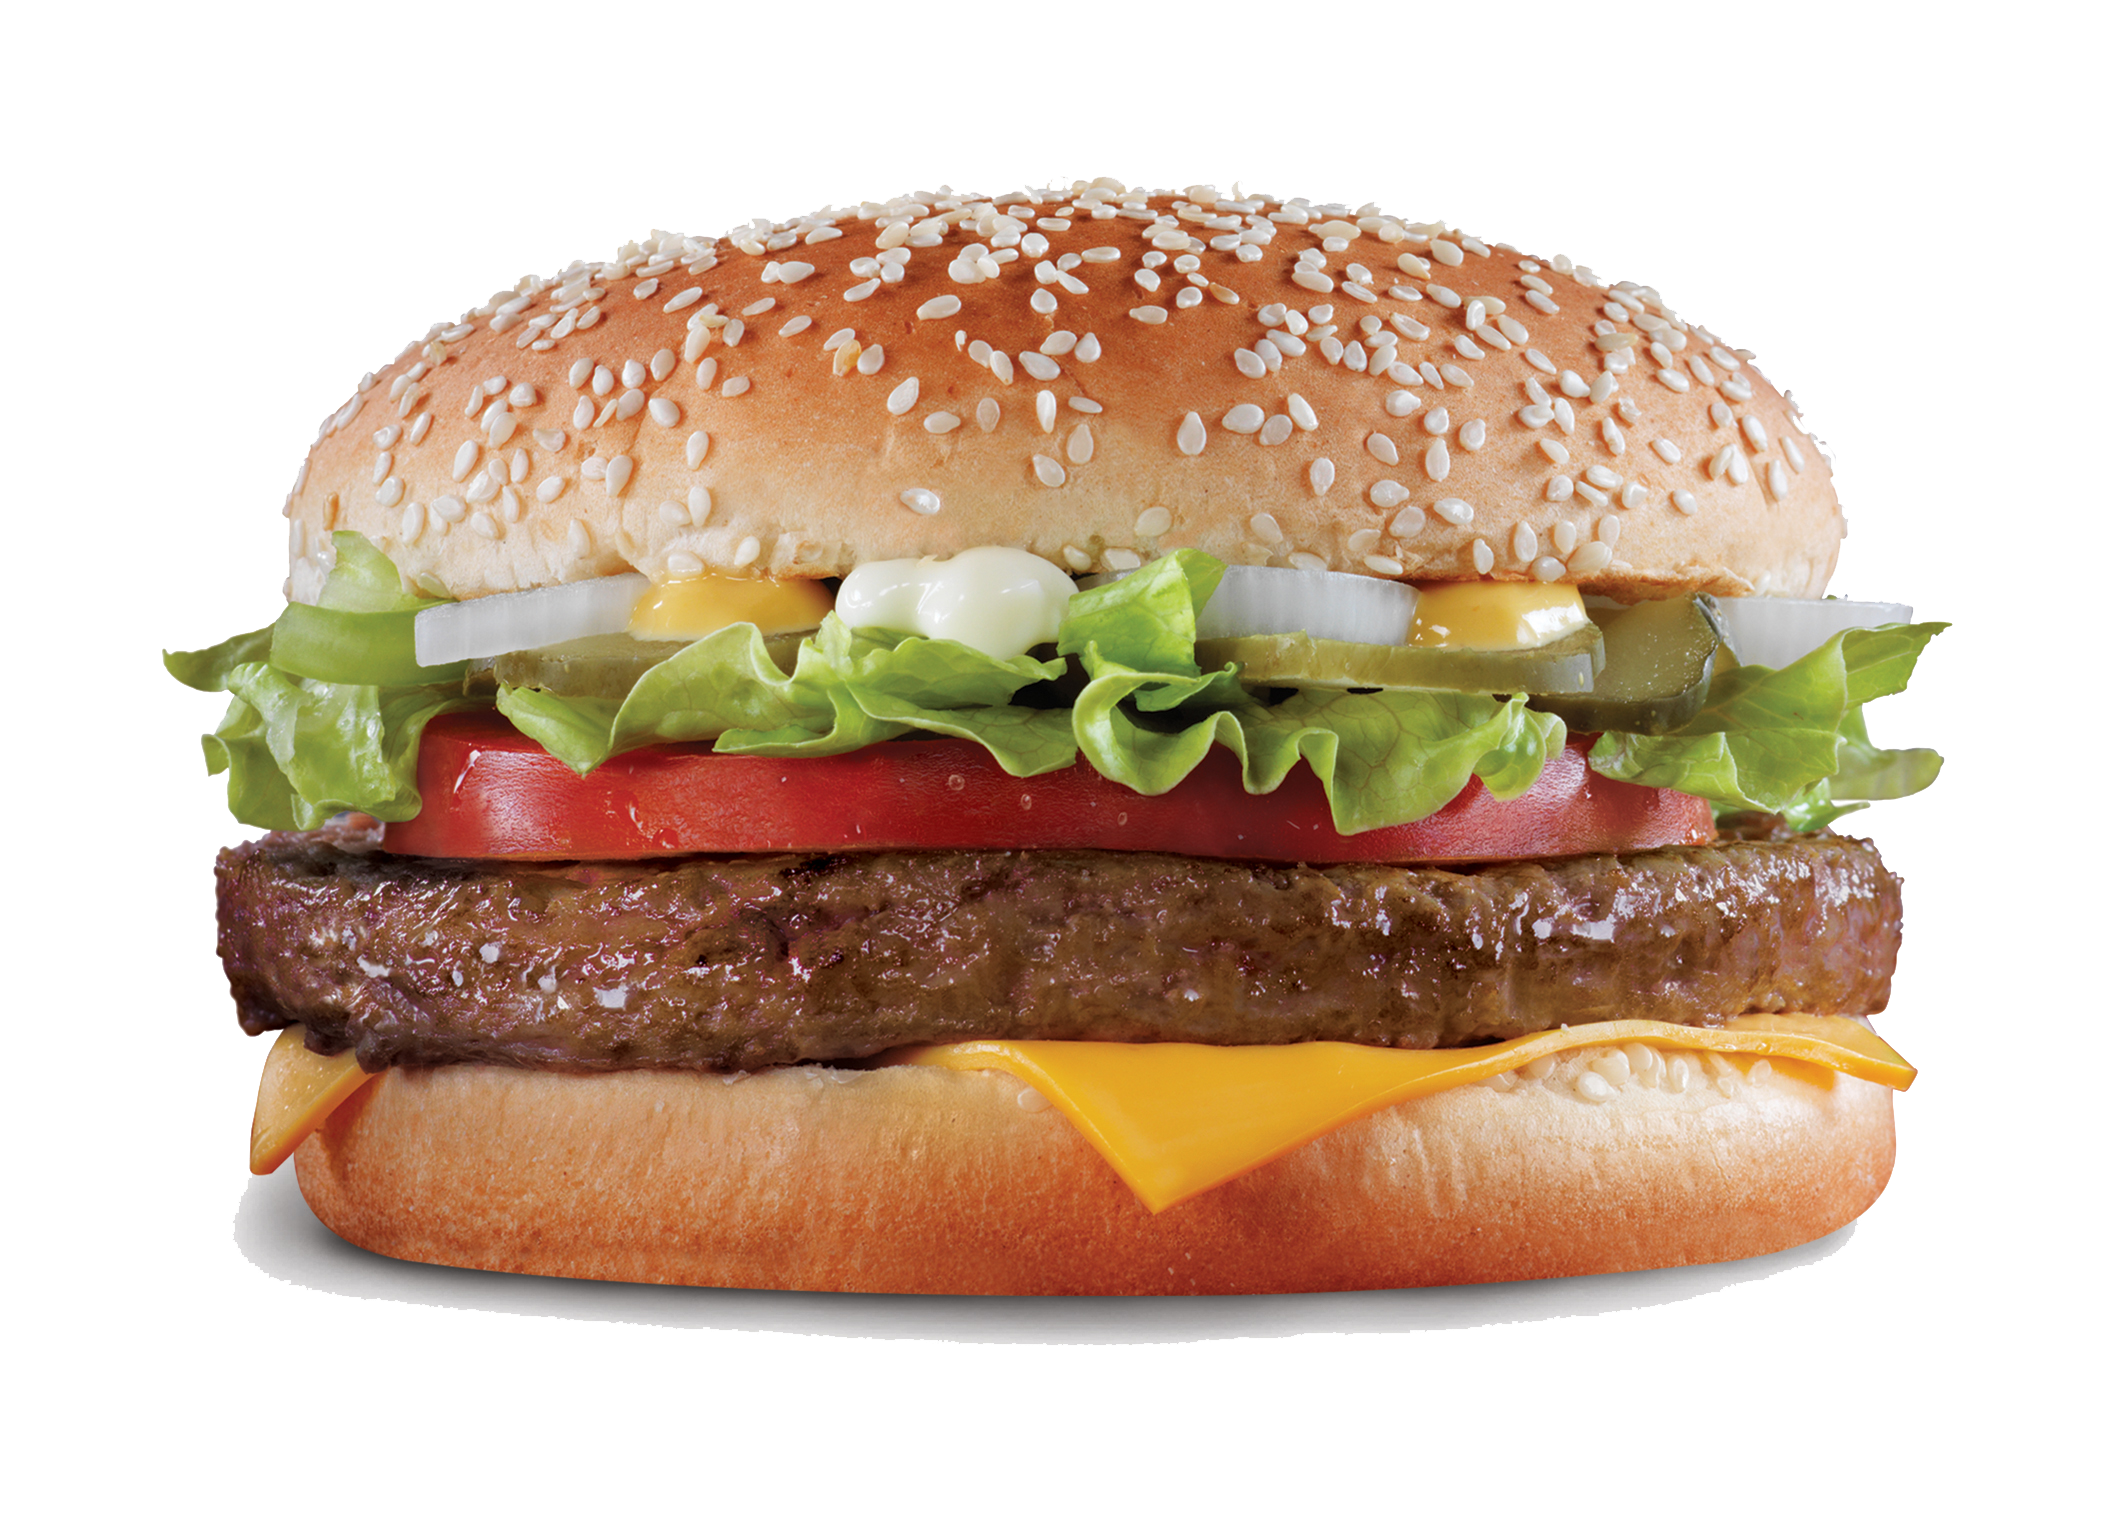 Burger Free Download Png PNG Image - Burger HD PNG